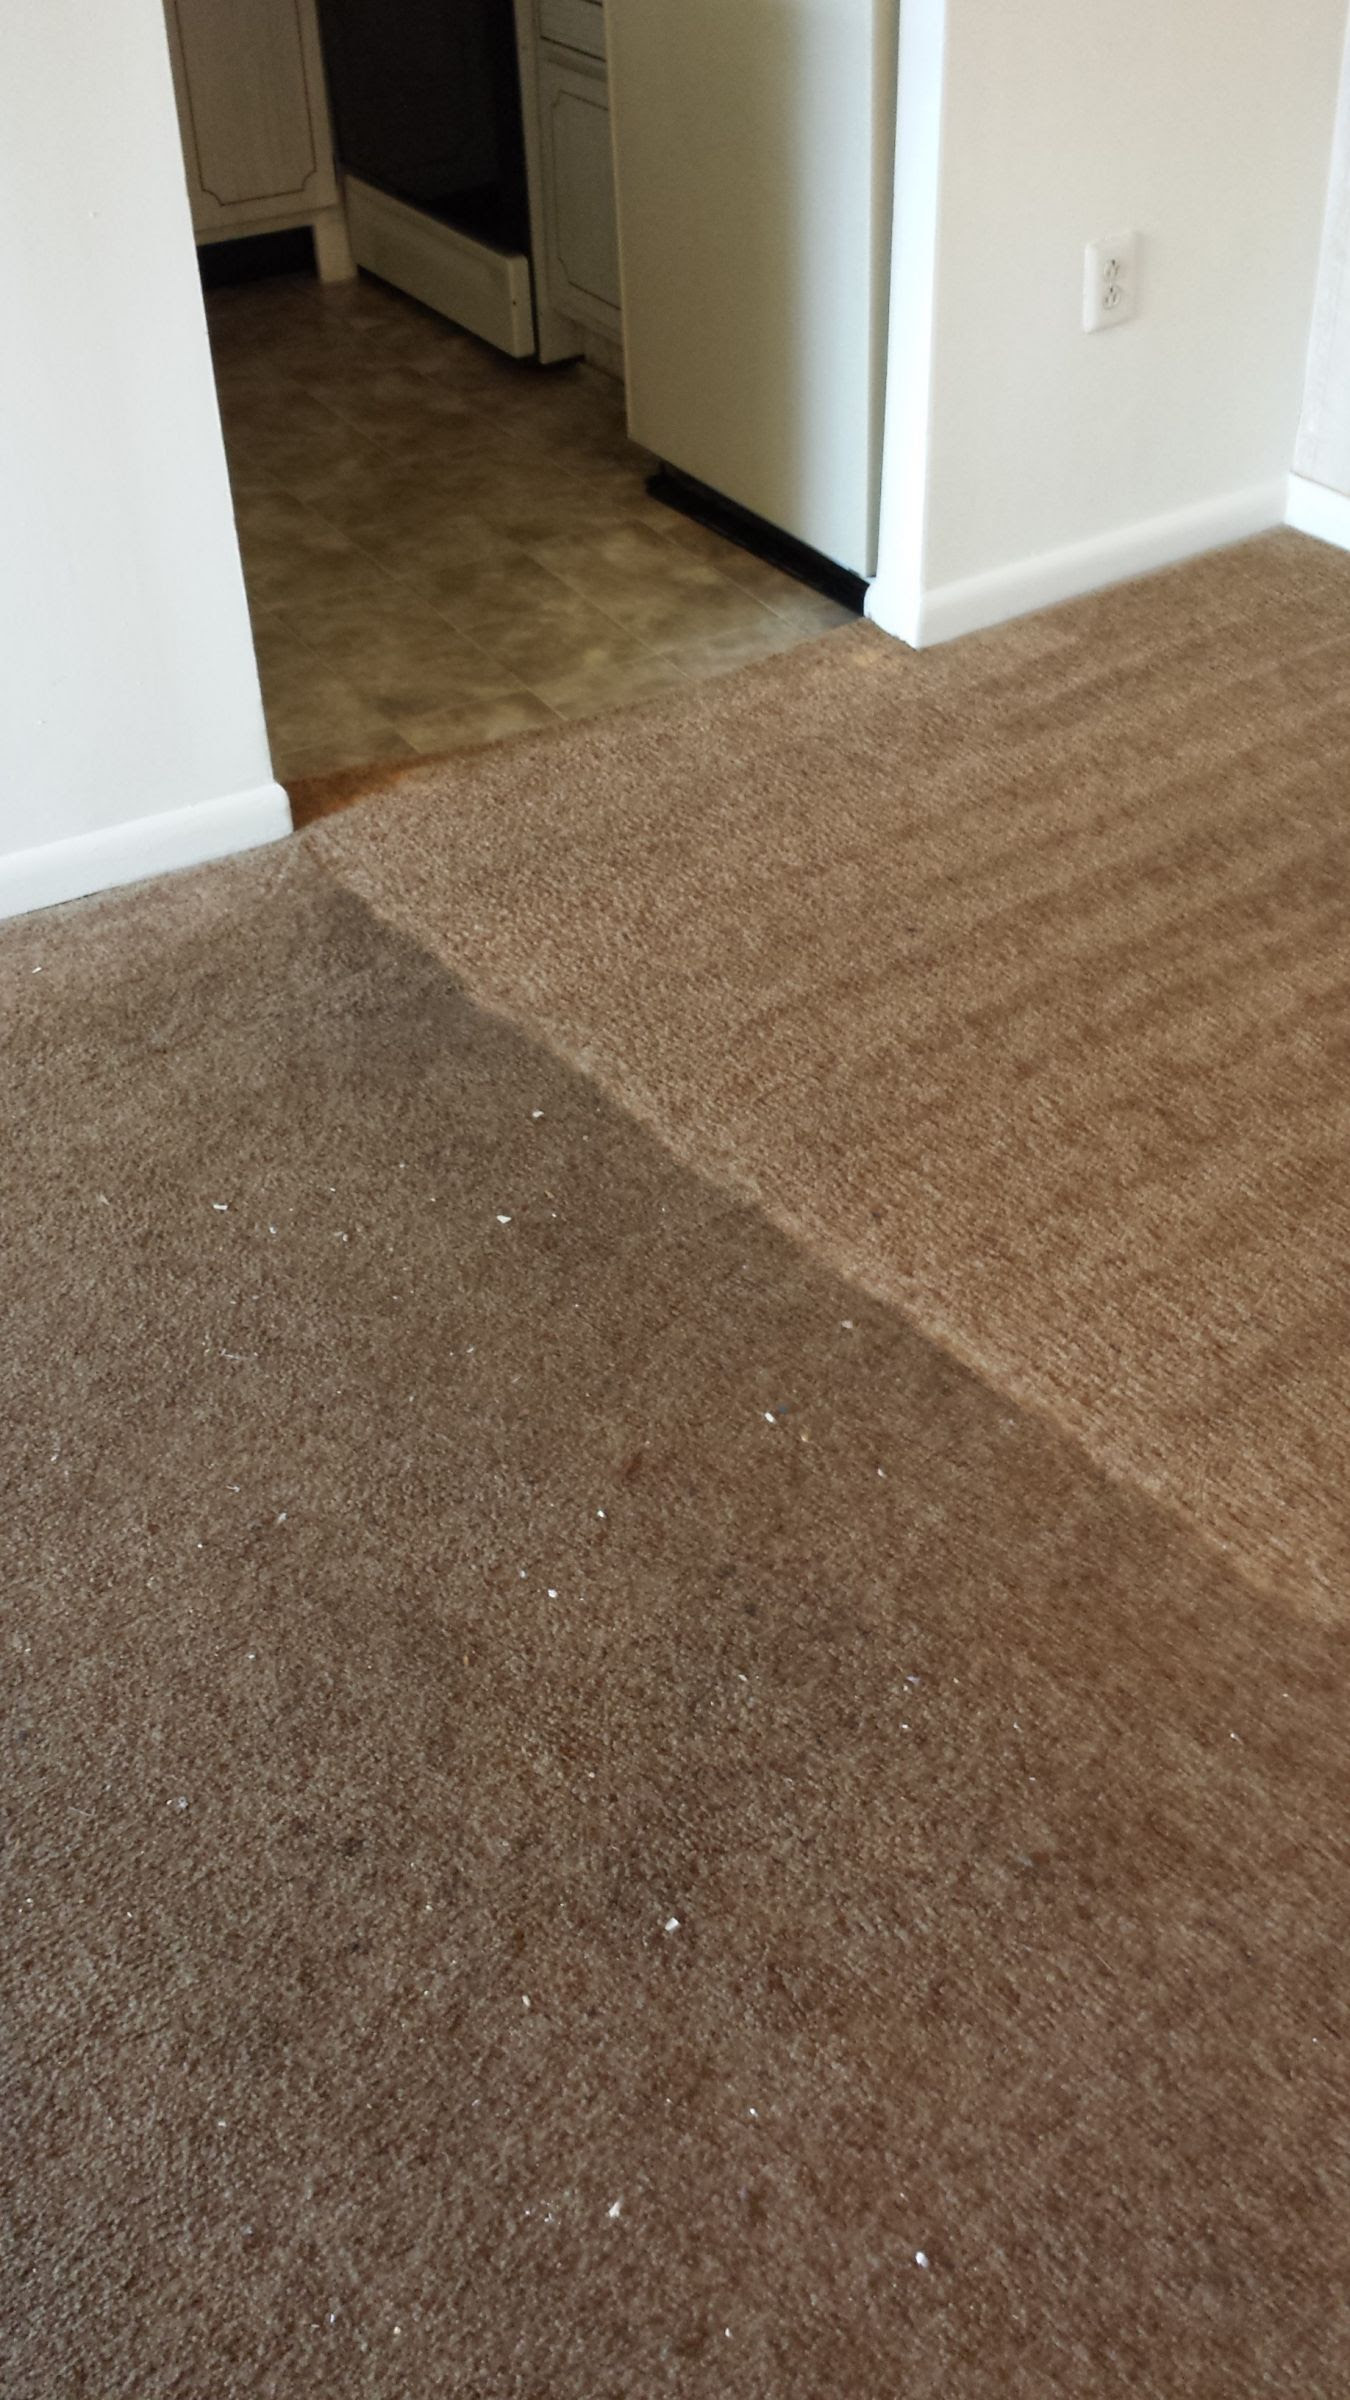 We Offer The Best Carpet Cleaner Services In Cherry Hill Nj